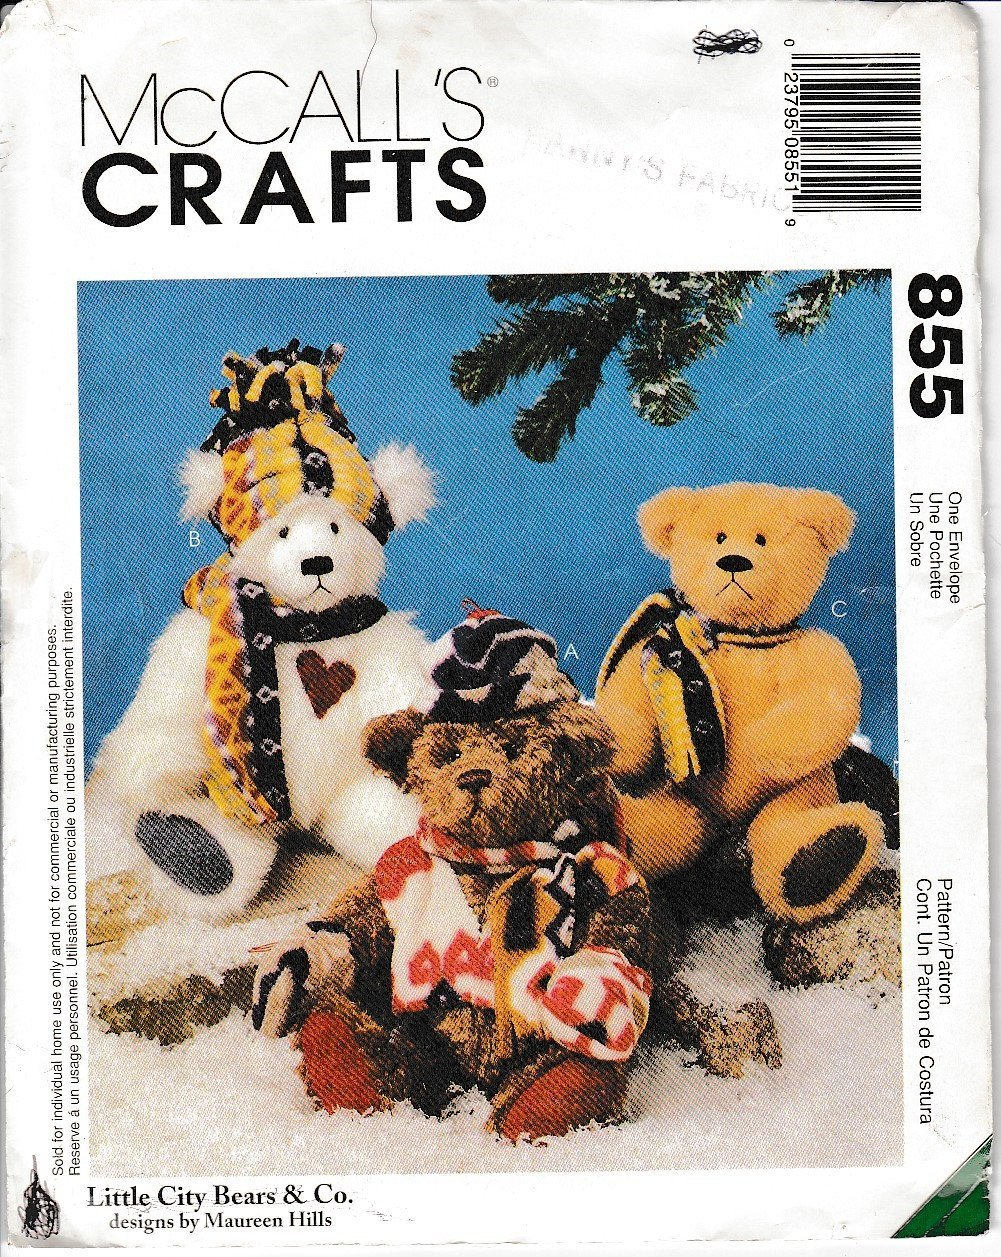 McCalls Crafts 855 / 9498 Stuffed Bears Sewing Pattern Christmas - VintageStitching - Vintage Sewing Patterns